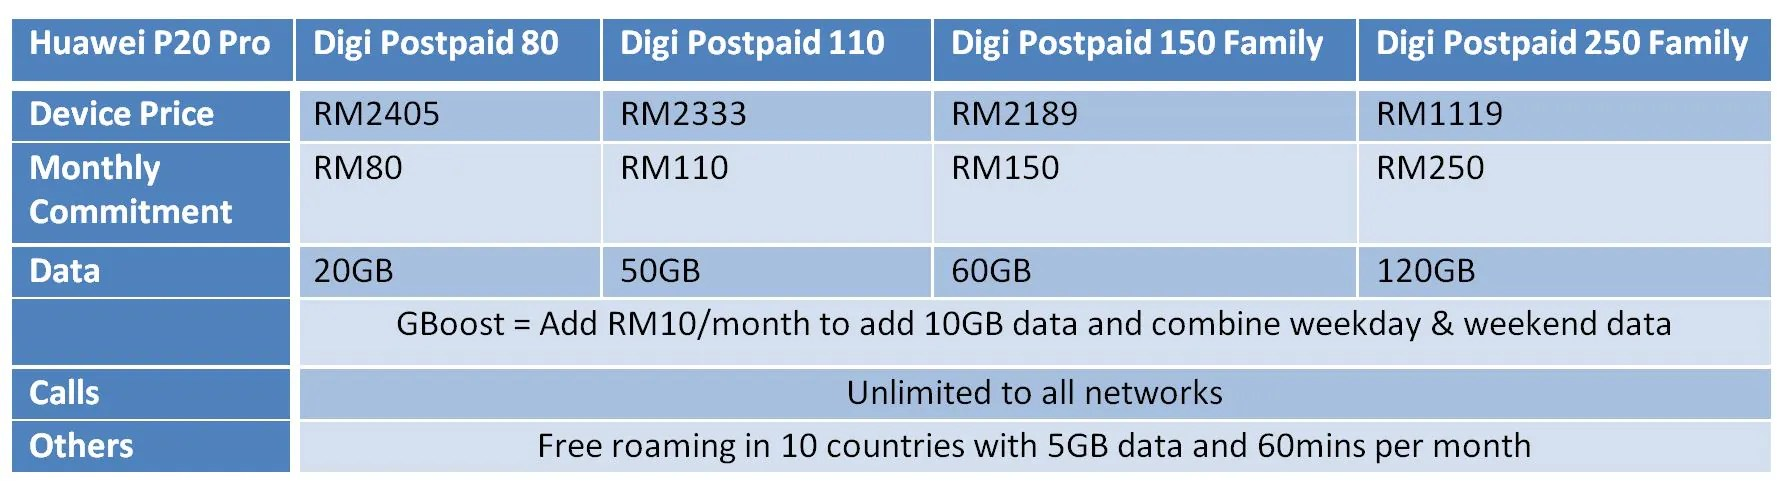 Digi Offers Borderless Experience With Huawei P20 Postpaid